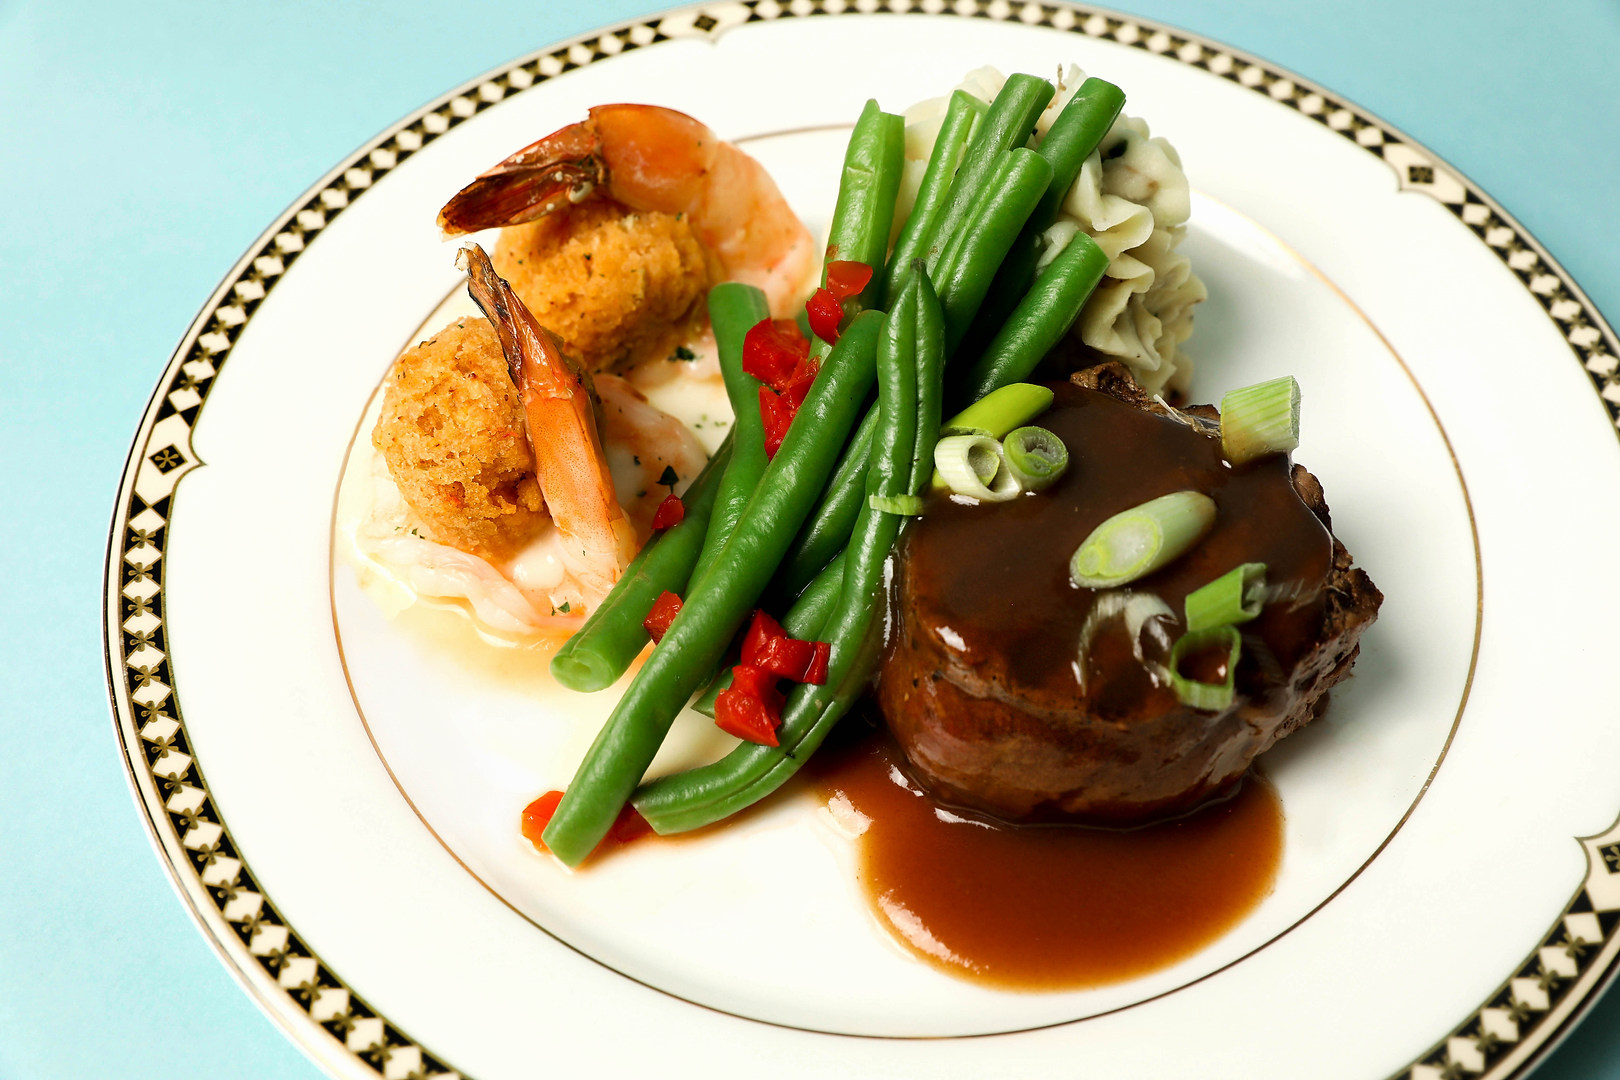 Petite Filet Mignon paired with New England Baked Stuffed Shrimp